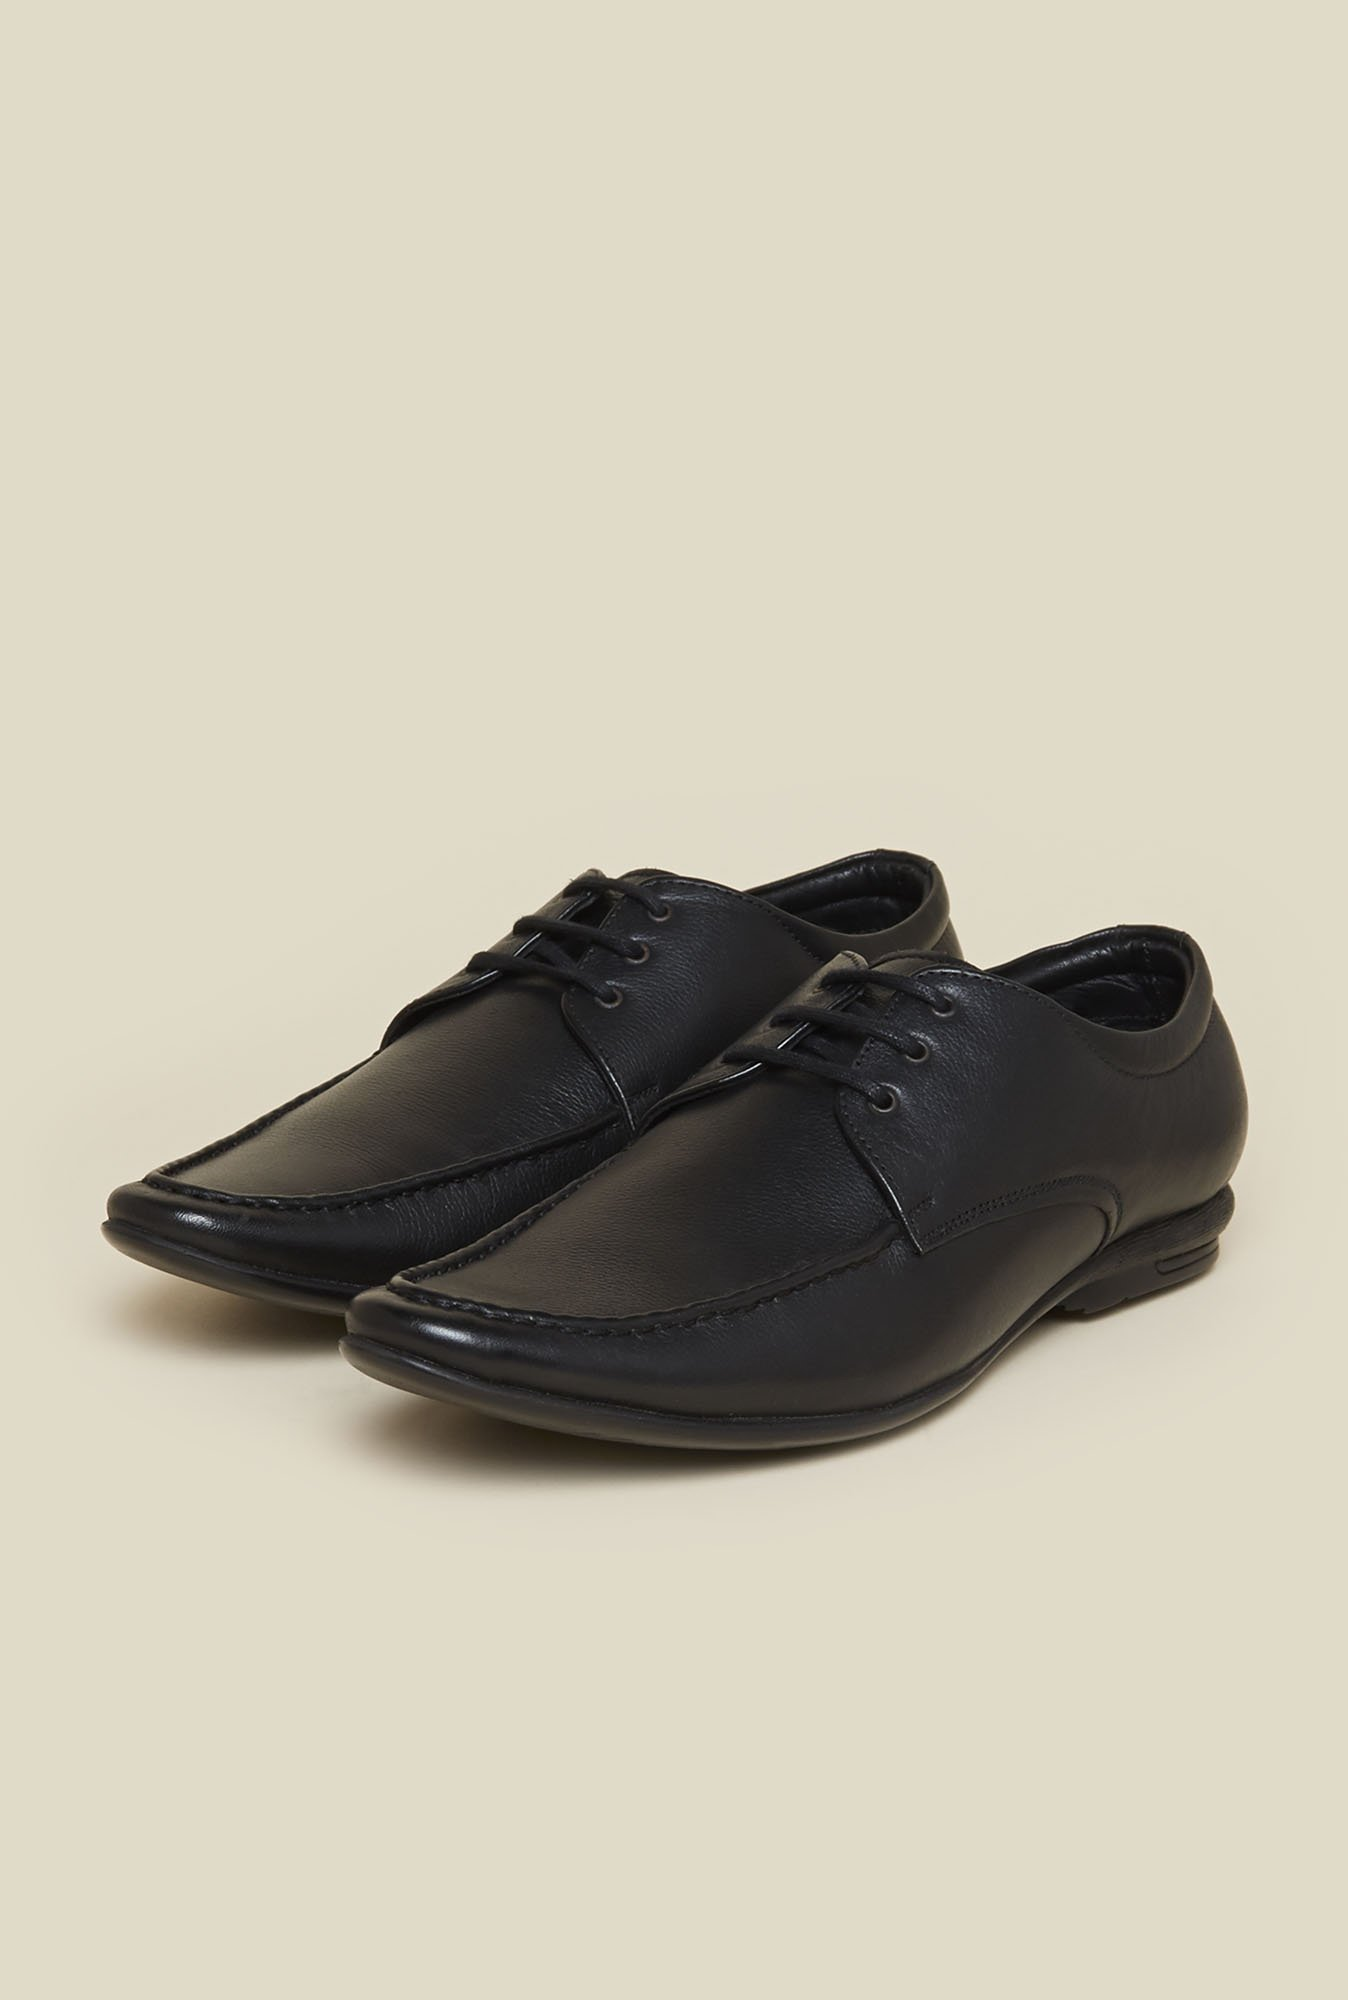 Mochi Black Leather Formal Shoes